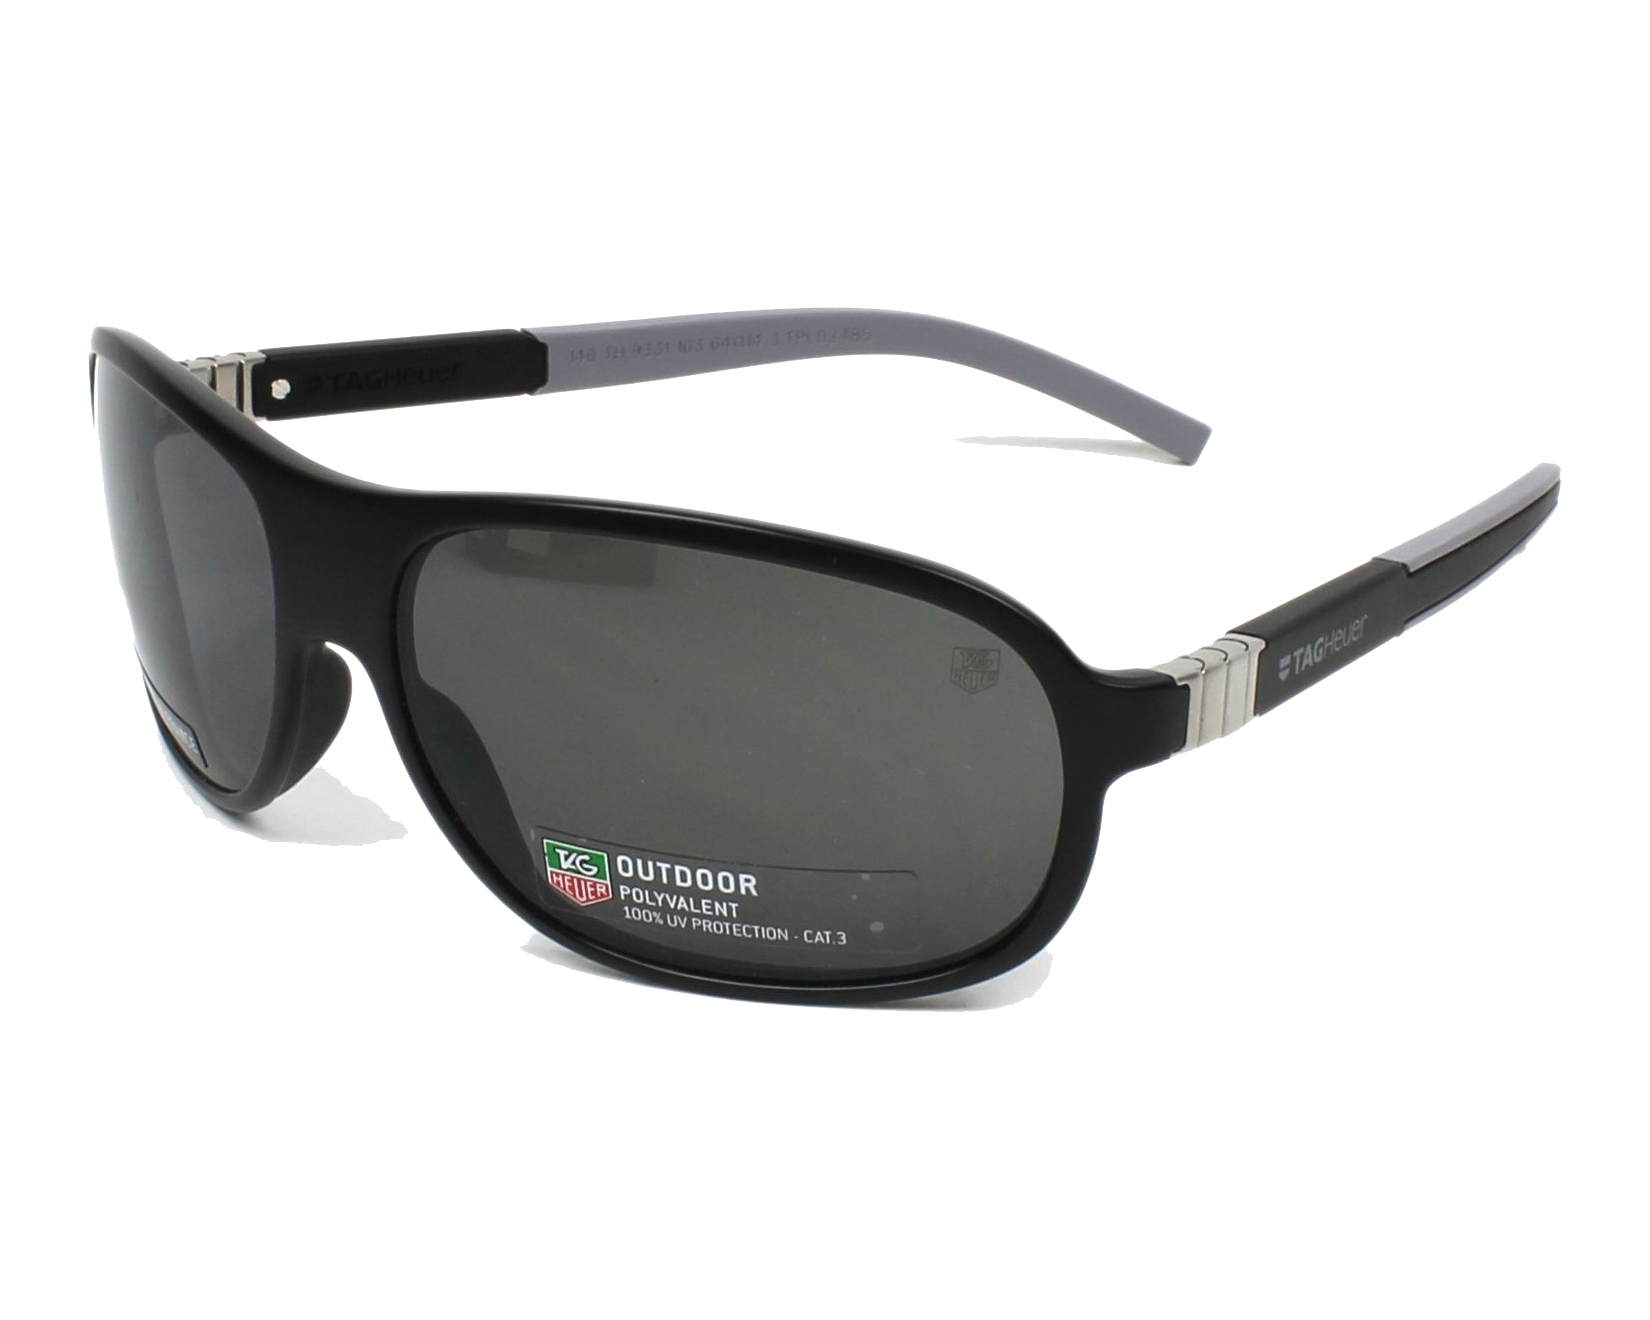 Tag Heuer Sunglasses Black with Grey Lenses TH-9331 103 - Visionet US